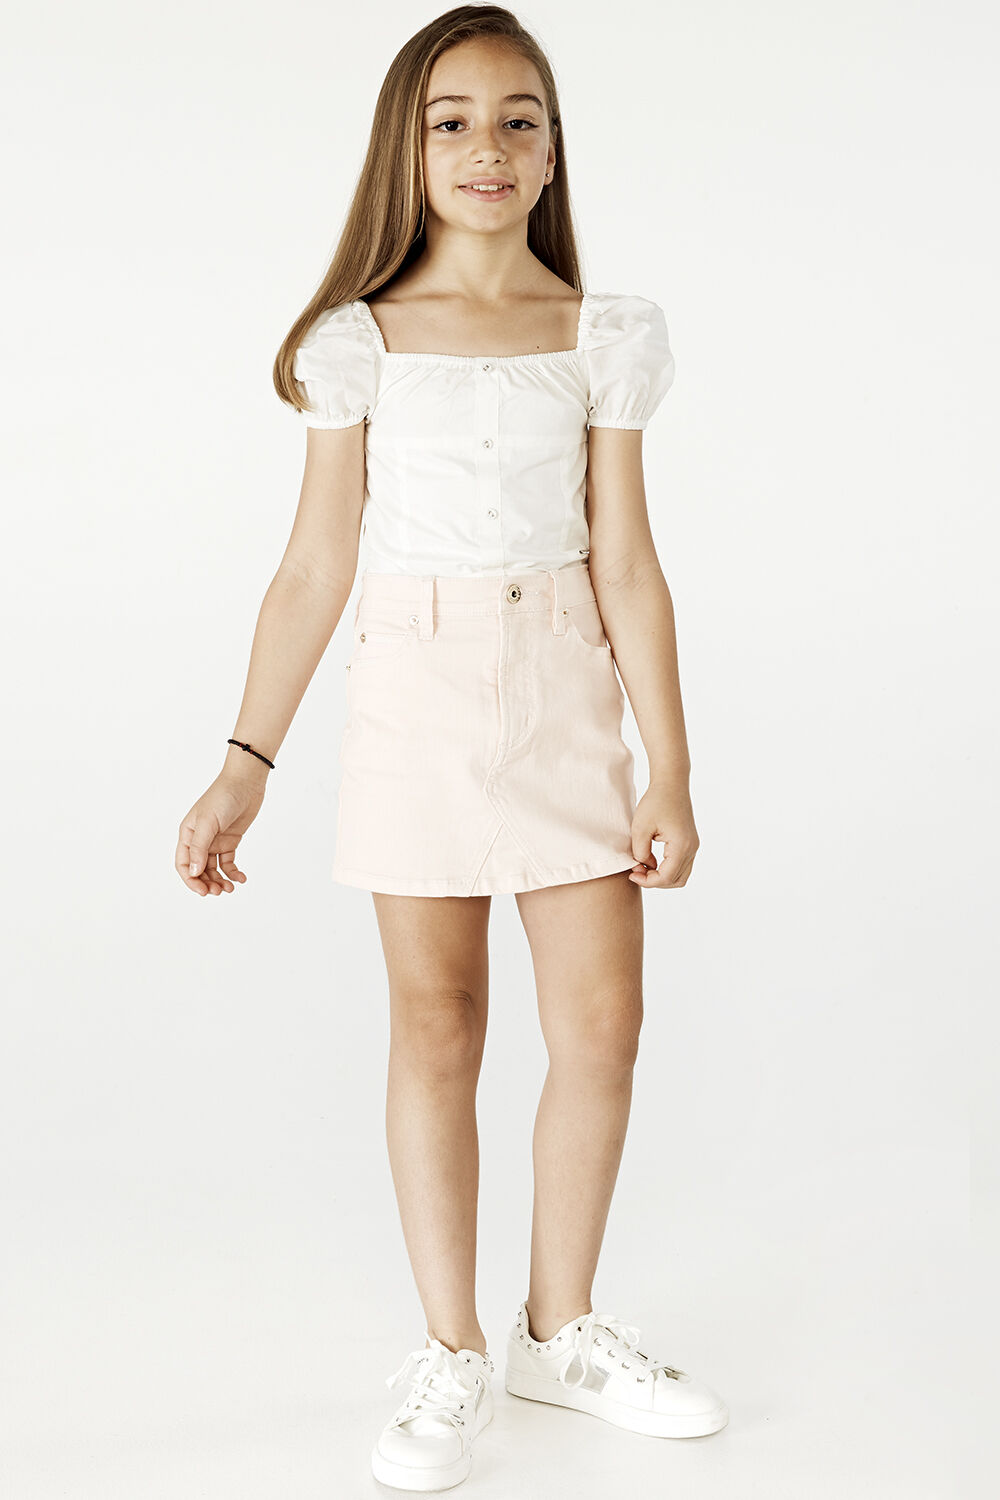 tween girl CHRISTIE TOP in colour CLOUD DANCER